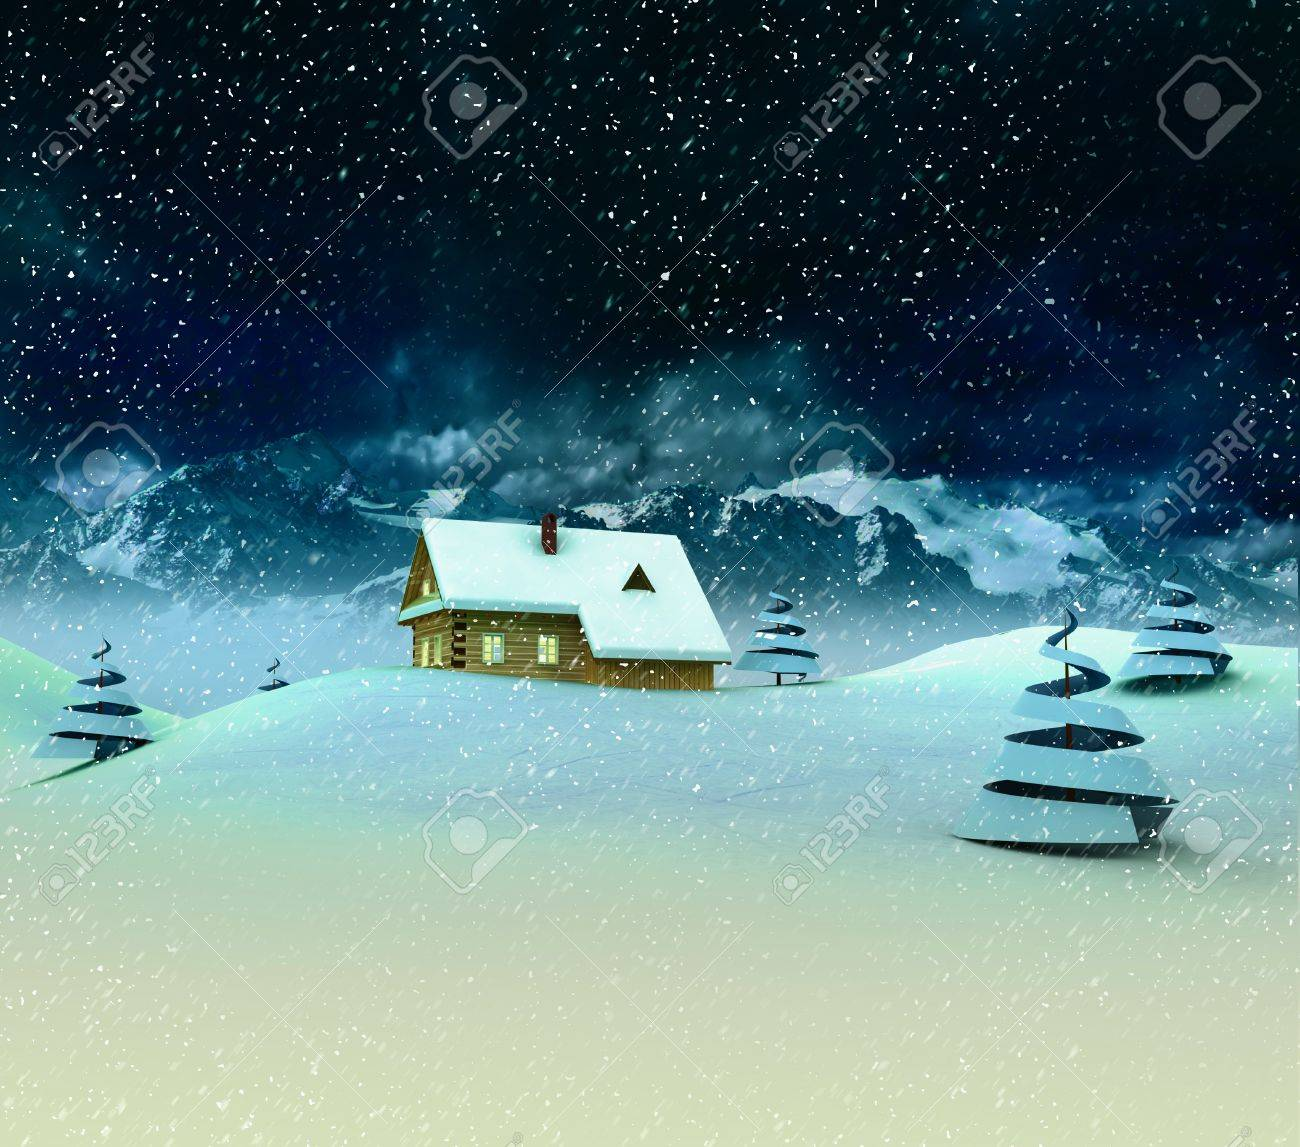 Lonely mountain hut with trees at winter snowfall illustration Stock Photo - 17351549